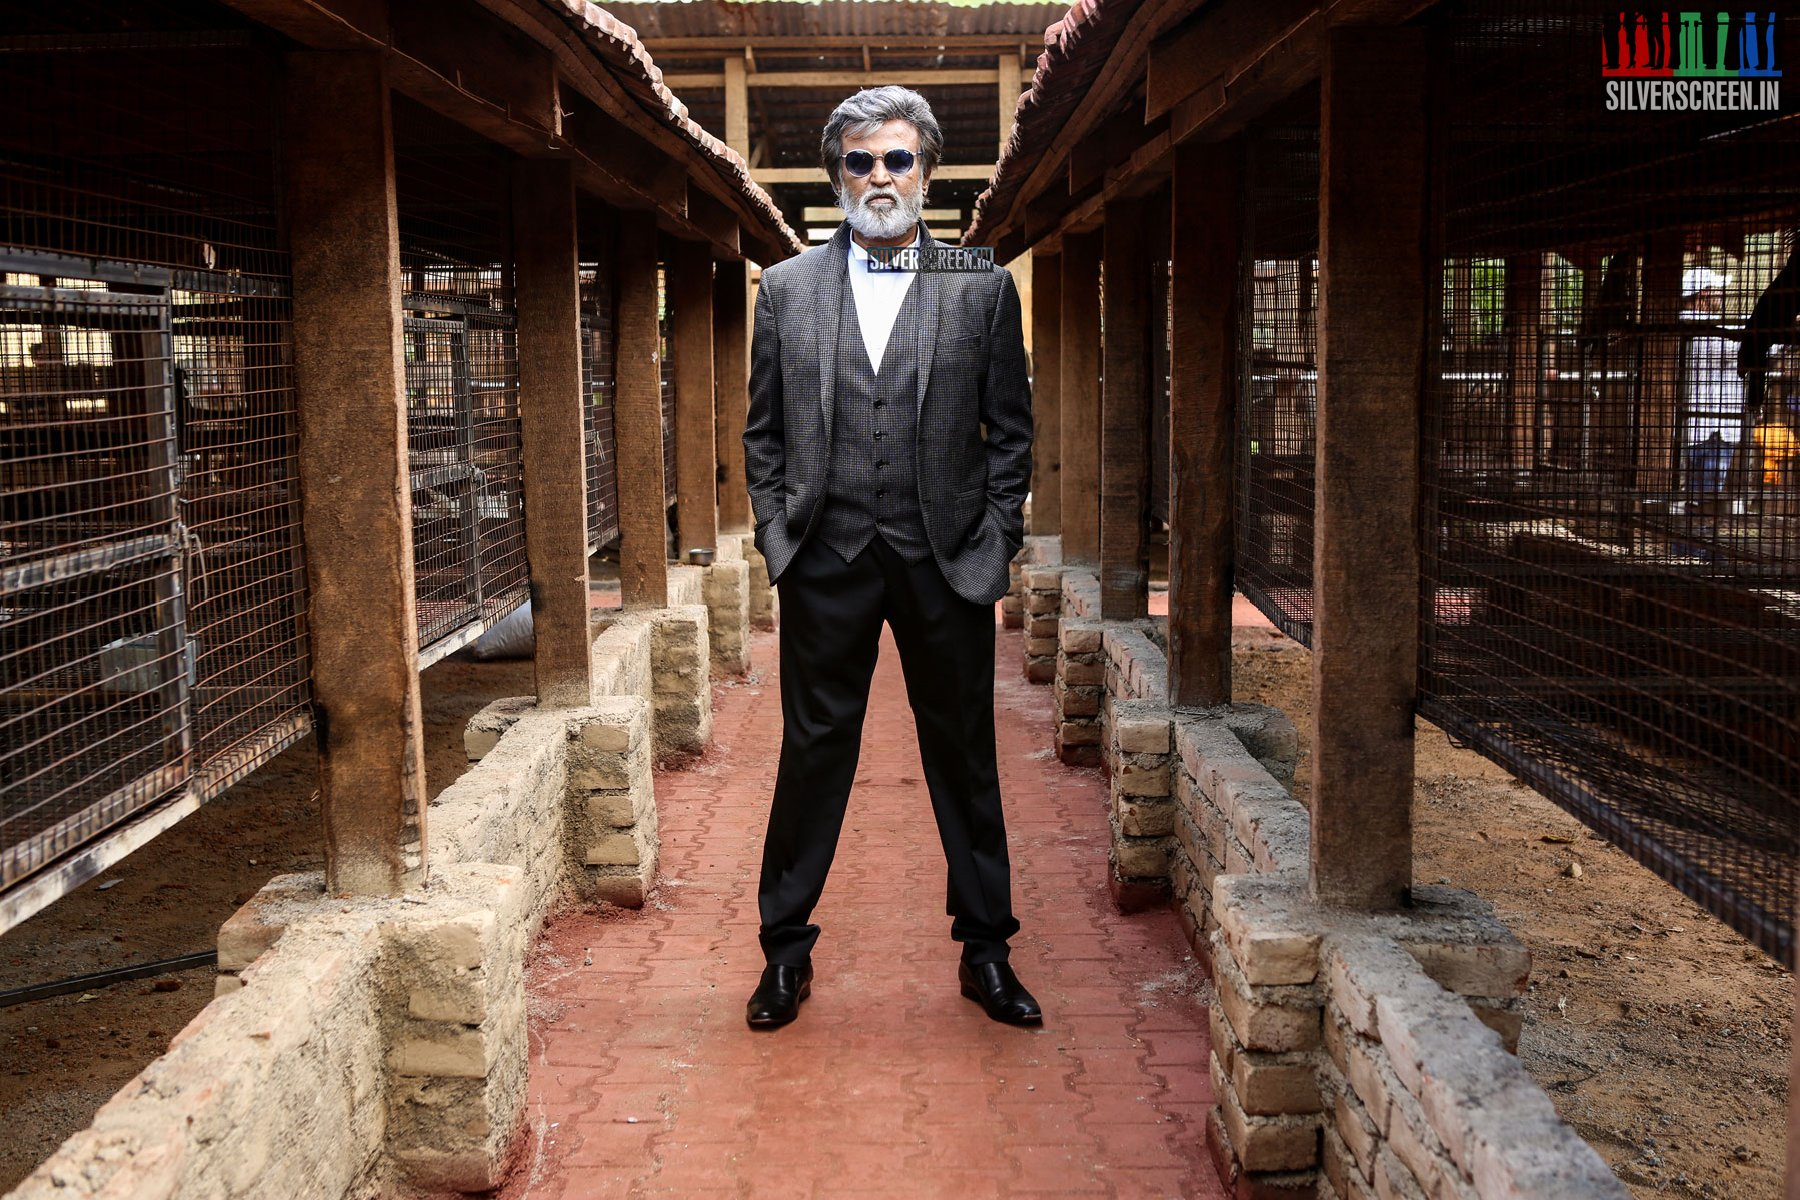 kabali likely to be delayed in chengalpet here is why silverscreen in